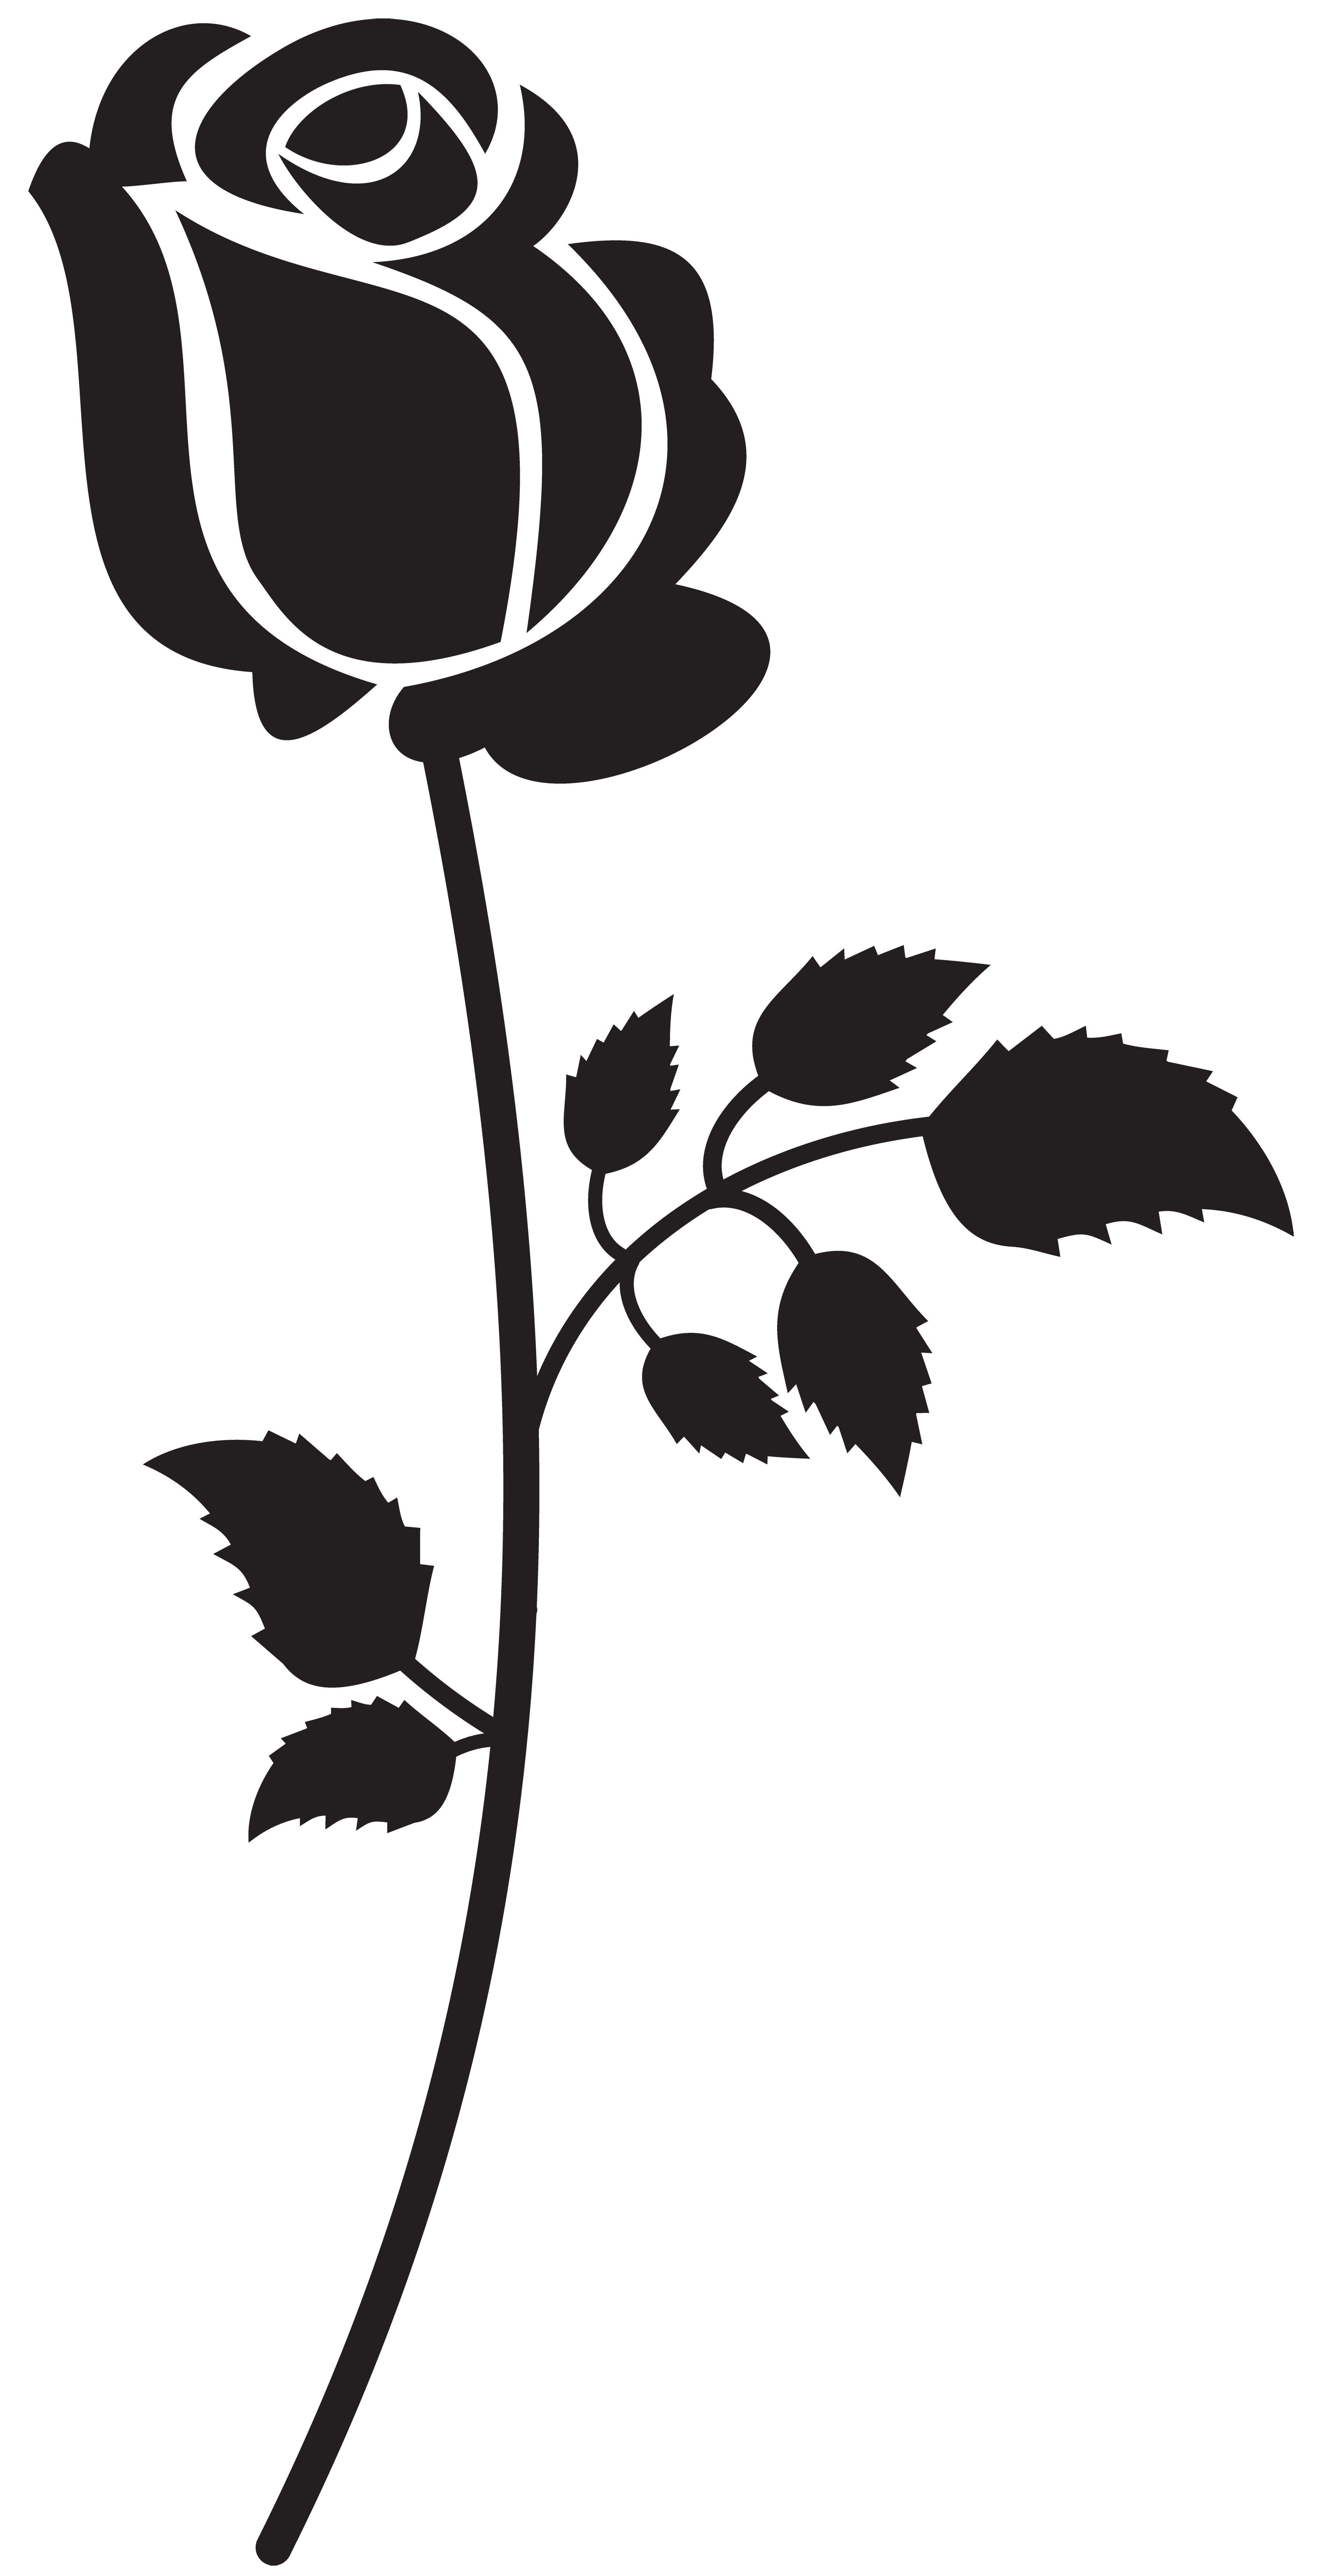 Rose silhouette png. Clip art image gallery